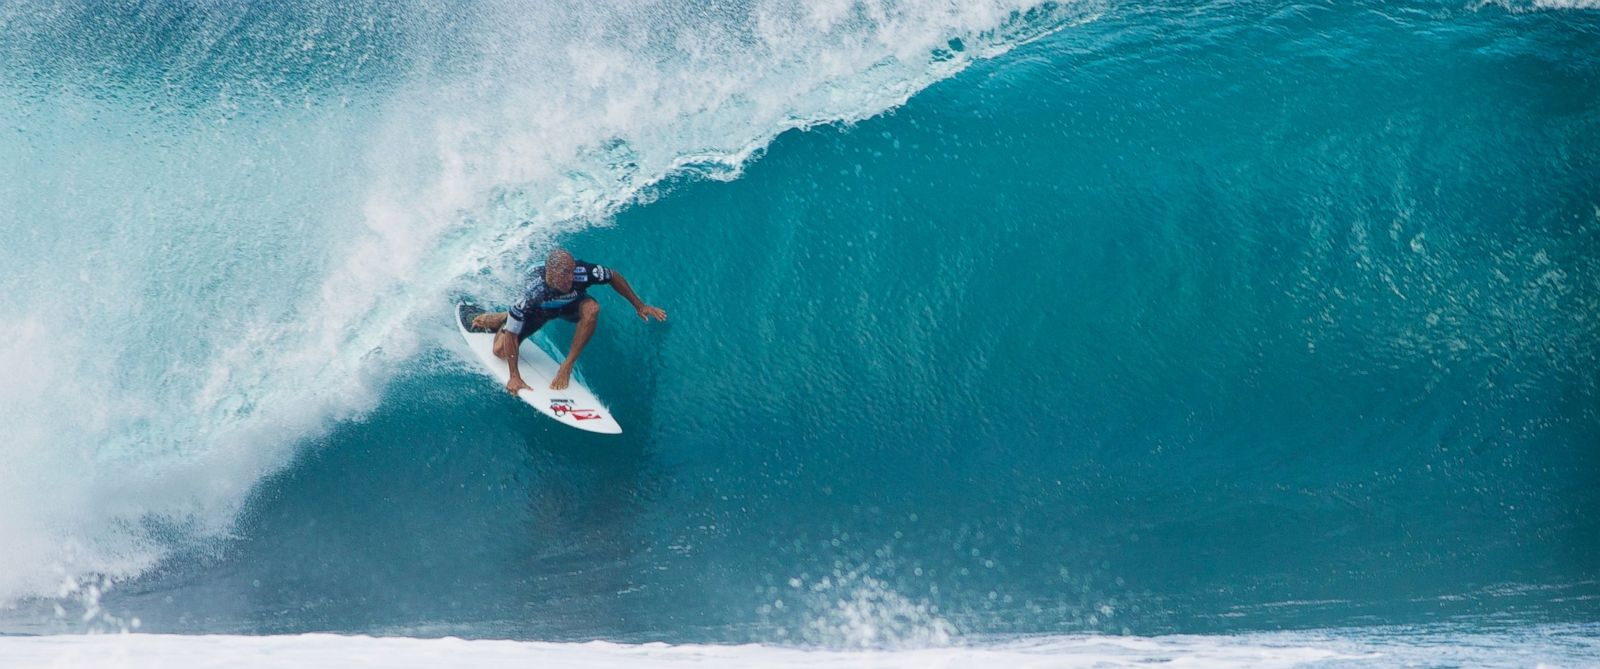 PHOTO: Kelly Slater of the U.S. surfs inside a barrel during the Billabong Pipeline Masters in this Dec. 9, 2011, file photo in North Shore, United States.